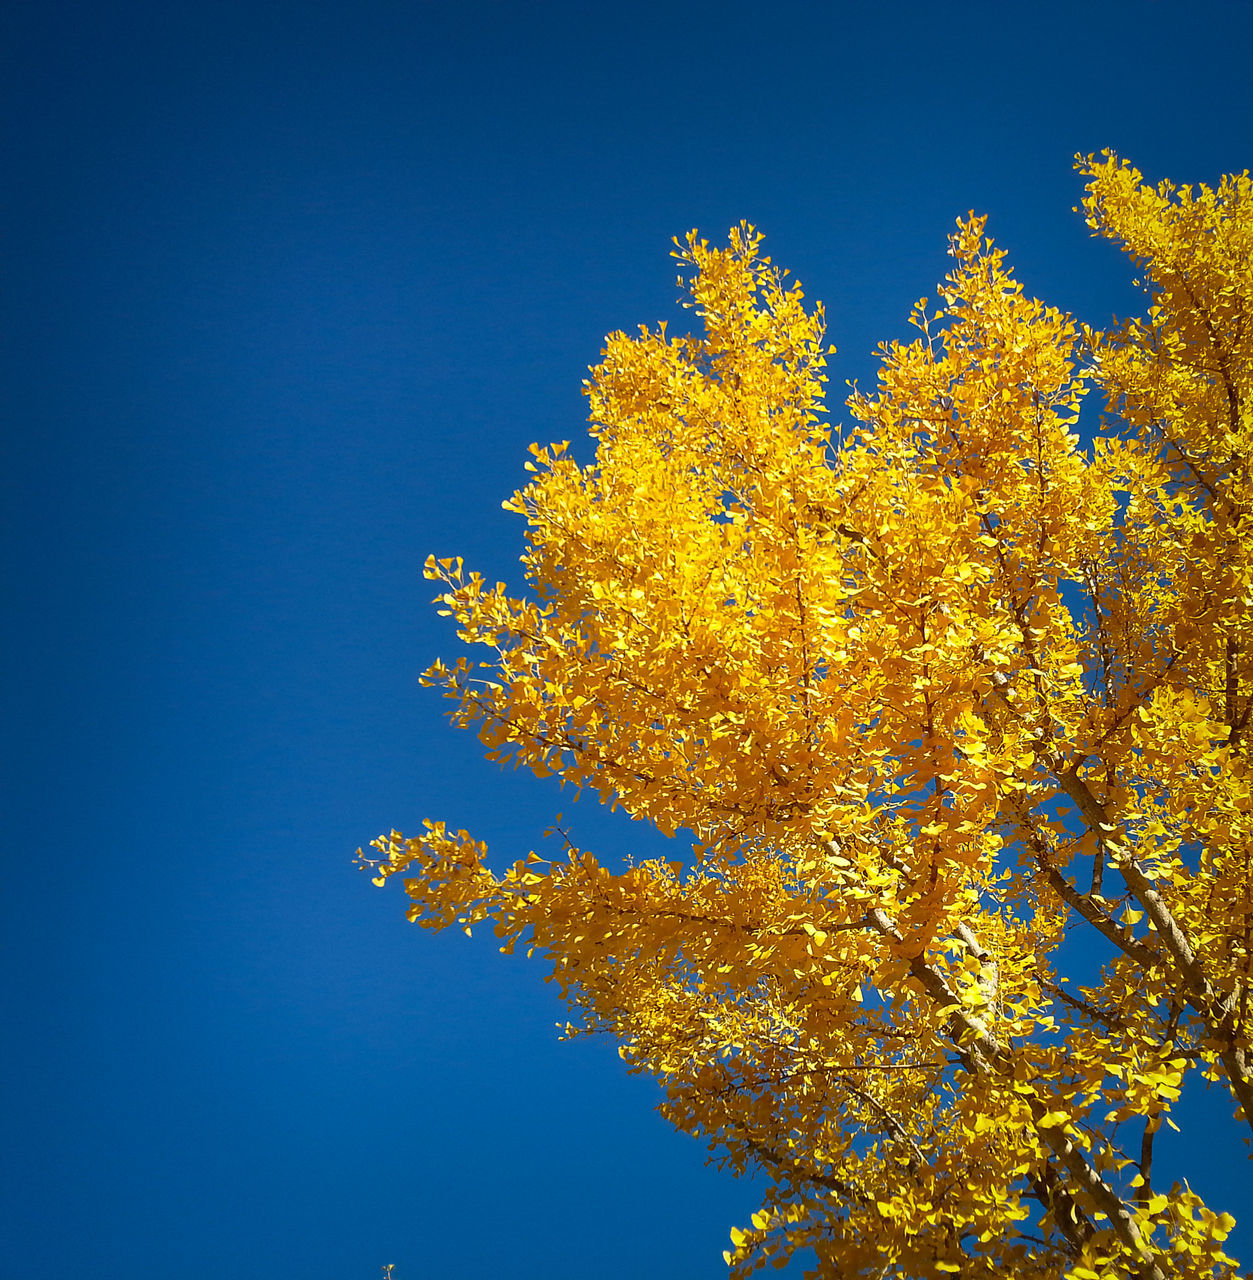 tree, blue, growth, low angle view, clear sky, nature, beauty in nature, branch, day, flower, outdoors, no people, sky, yellow, freshness, close-up